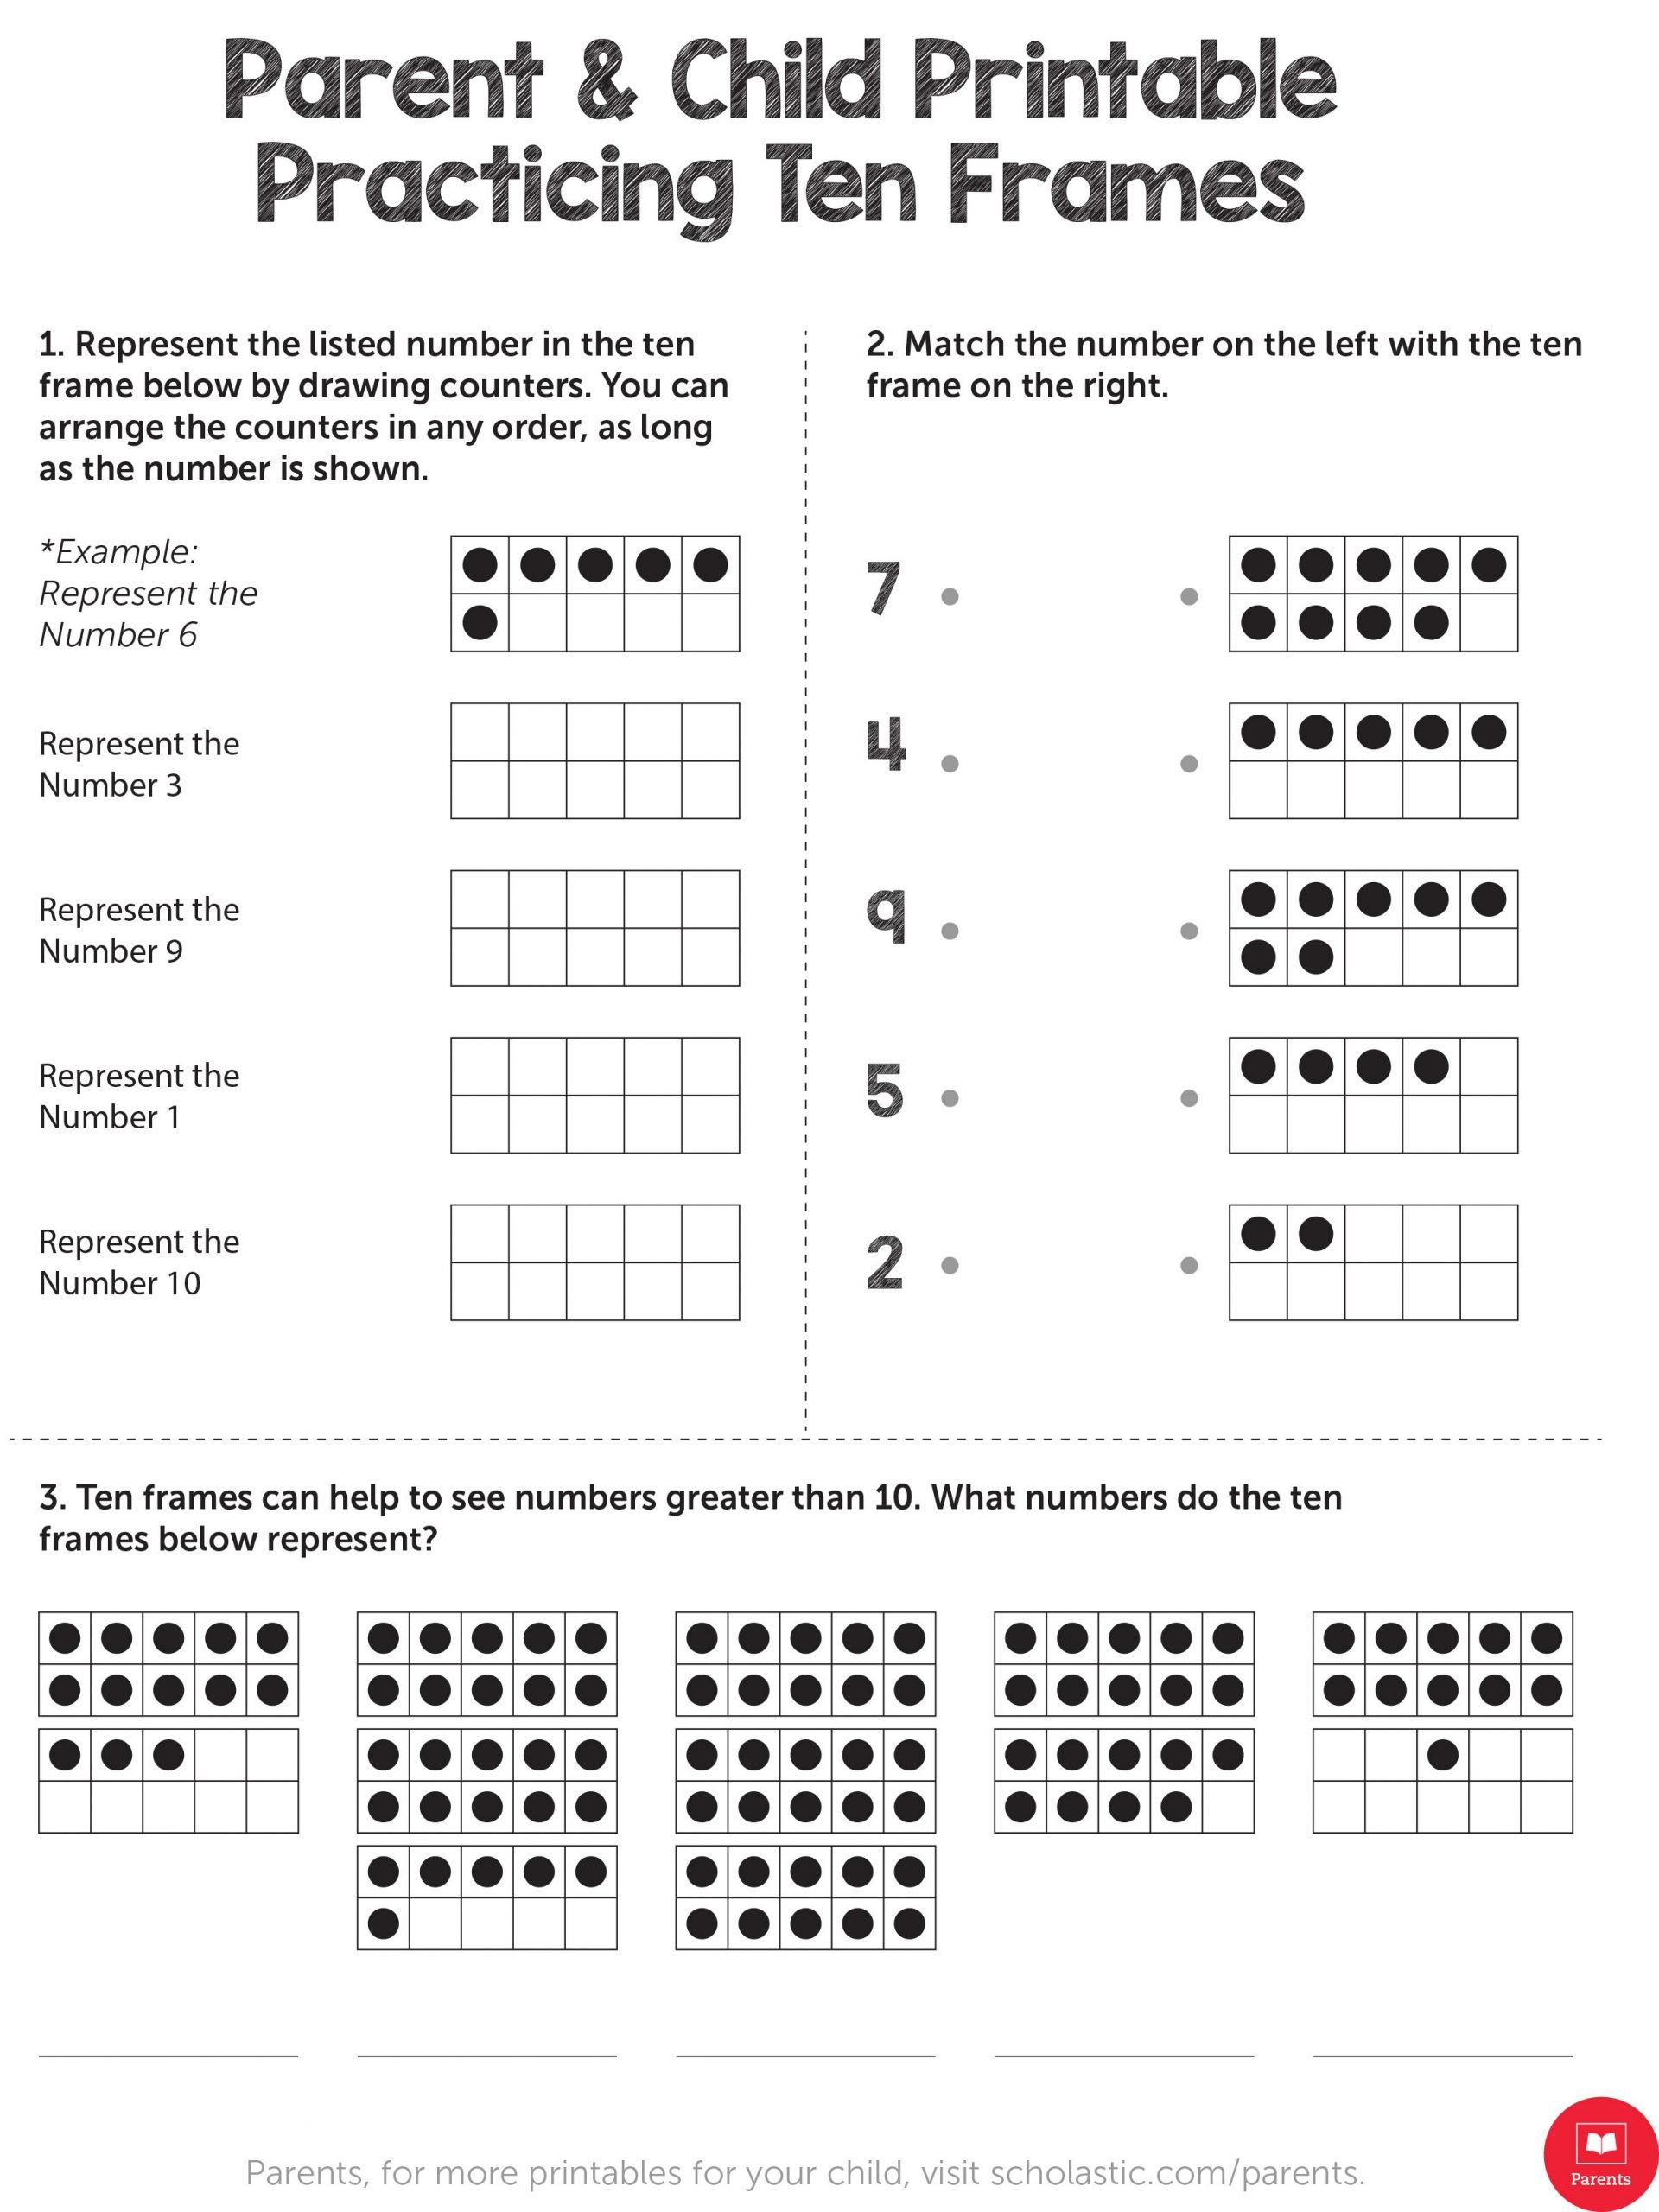 Kindergarten Ten Frame Worksheets Learn Your Child S Math with This Ten Frame Printable